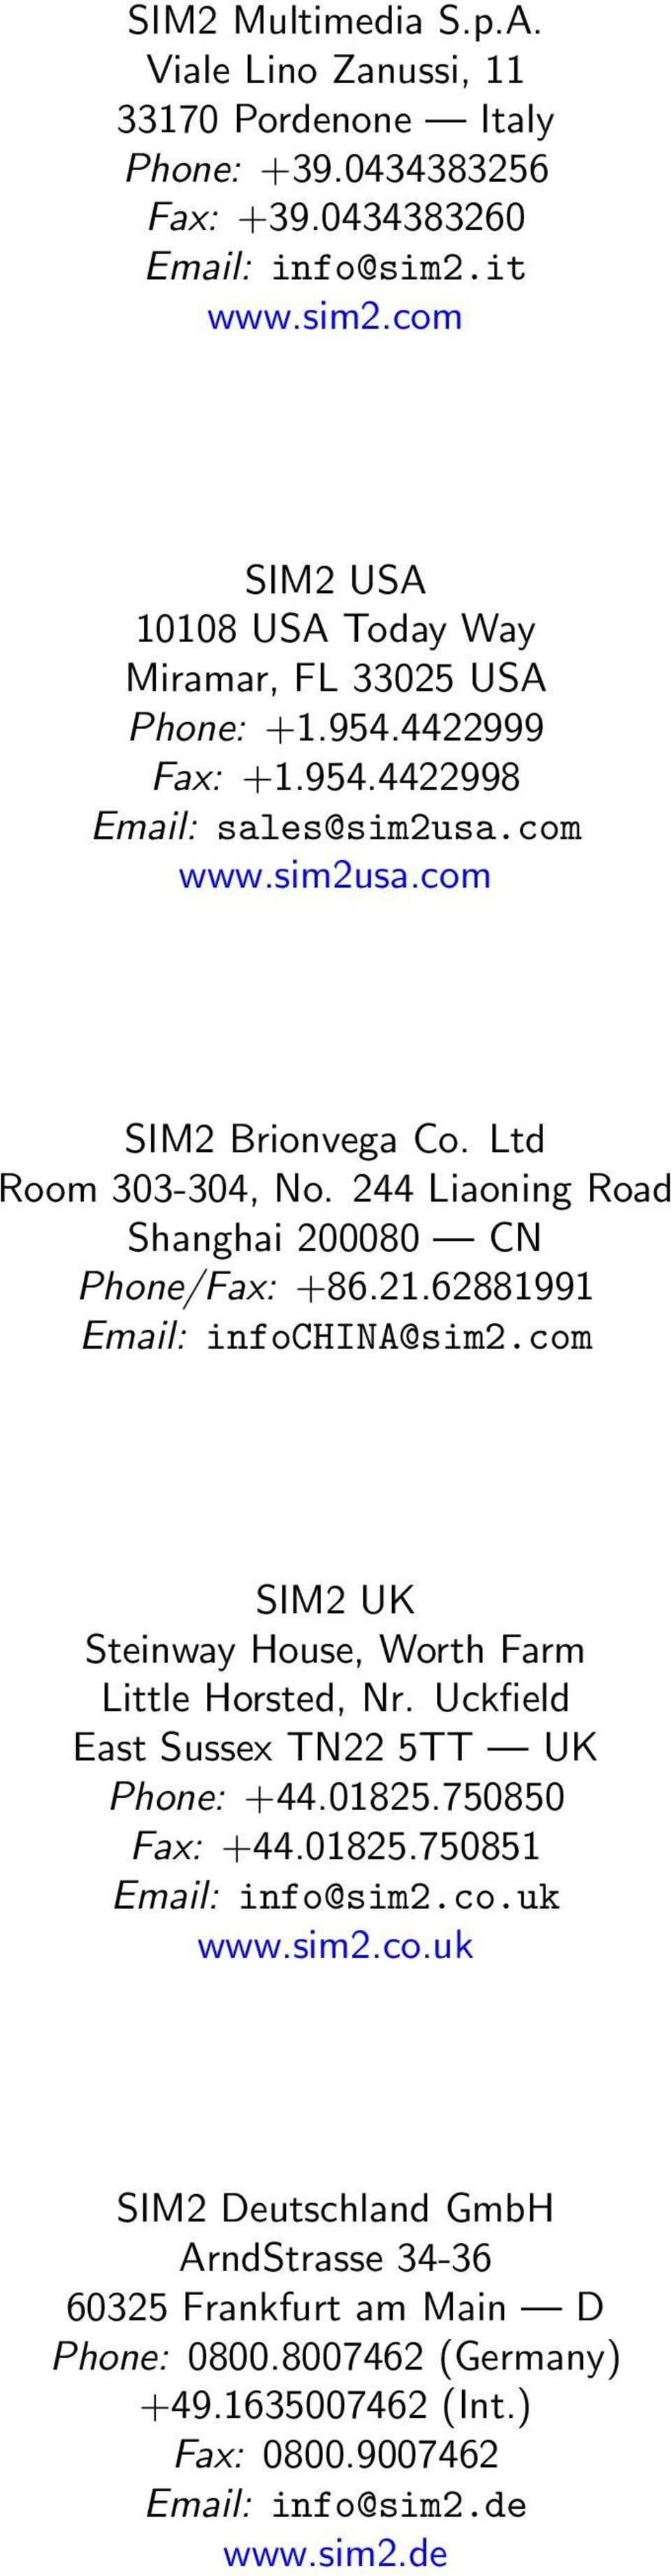 Ltd Room 303-304, No. 244 Liaoning Road Shanghai 200080 CN Phone/Fax: +86.21.62881991 Email: infochina@sim2.com SIM2 UK Steinway House, Worth Farm Little Horsted, Nr.